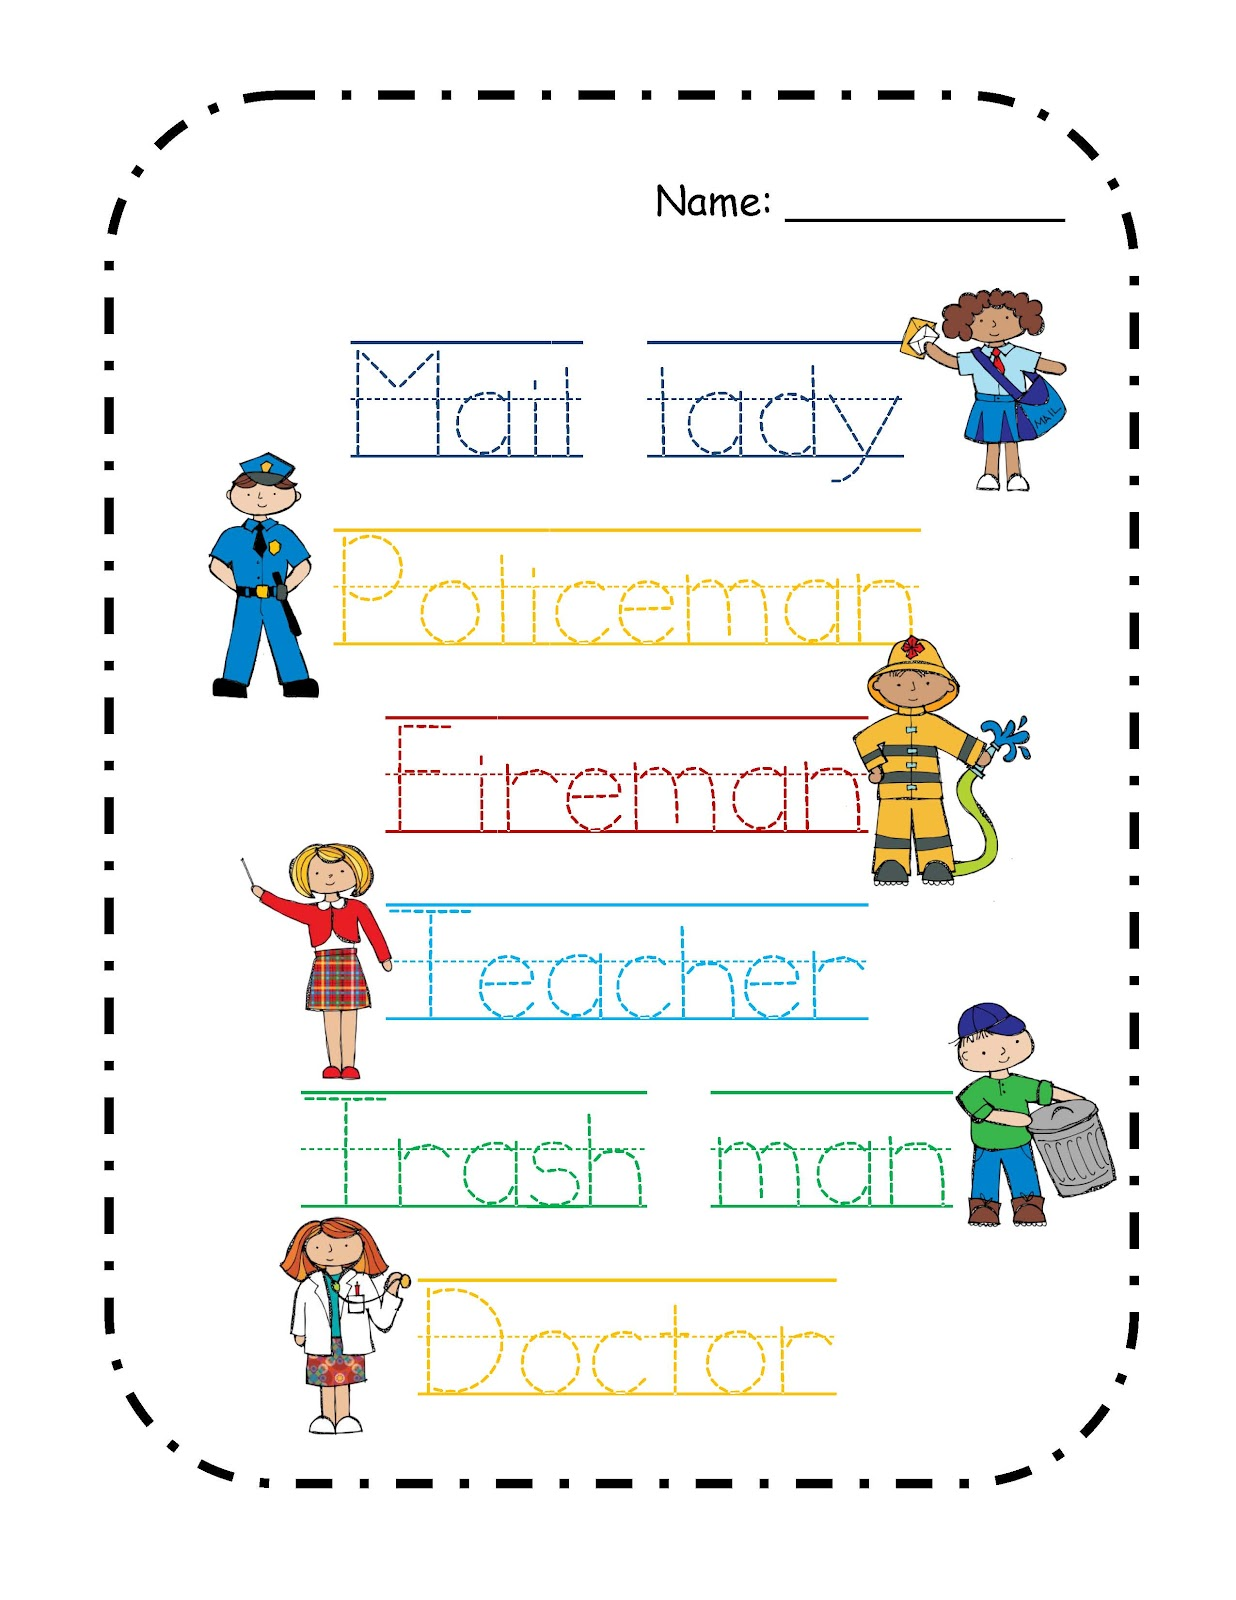 Worksheets Community Helper Worksheets community helpers worksheets wallpapercraft cool download